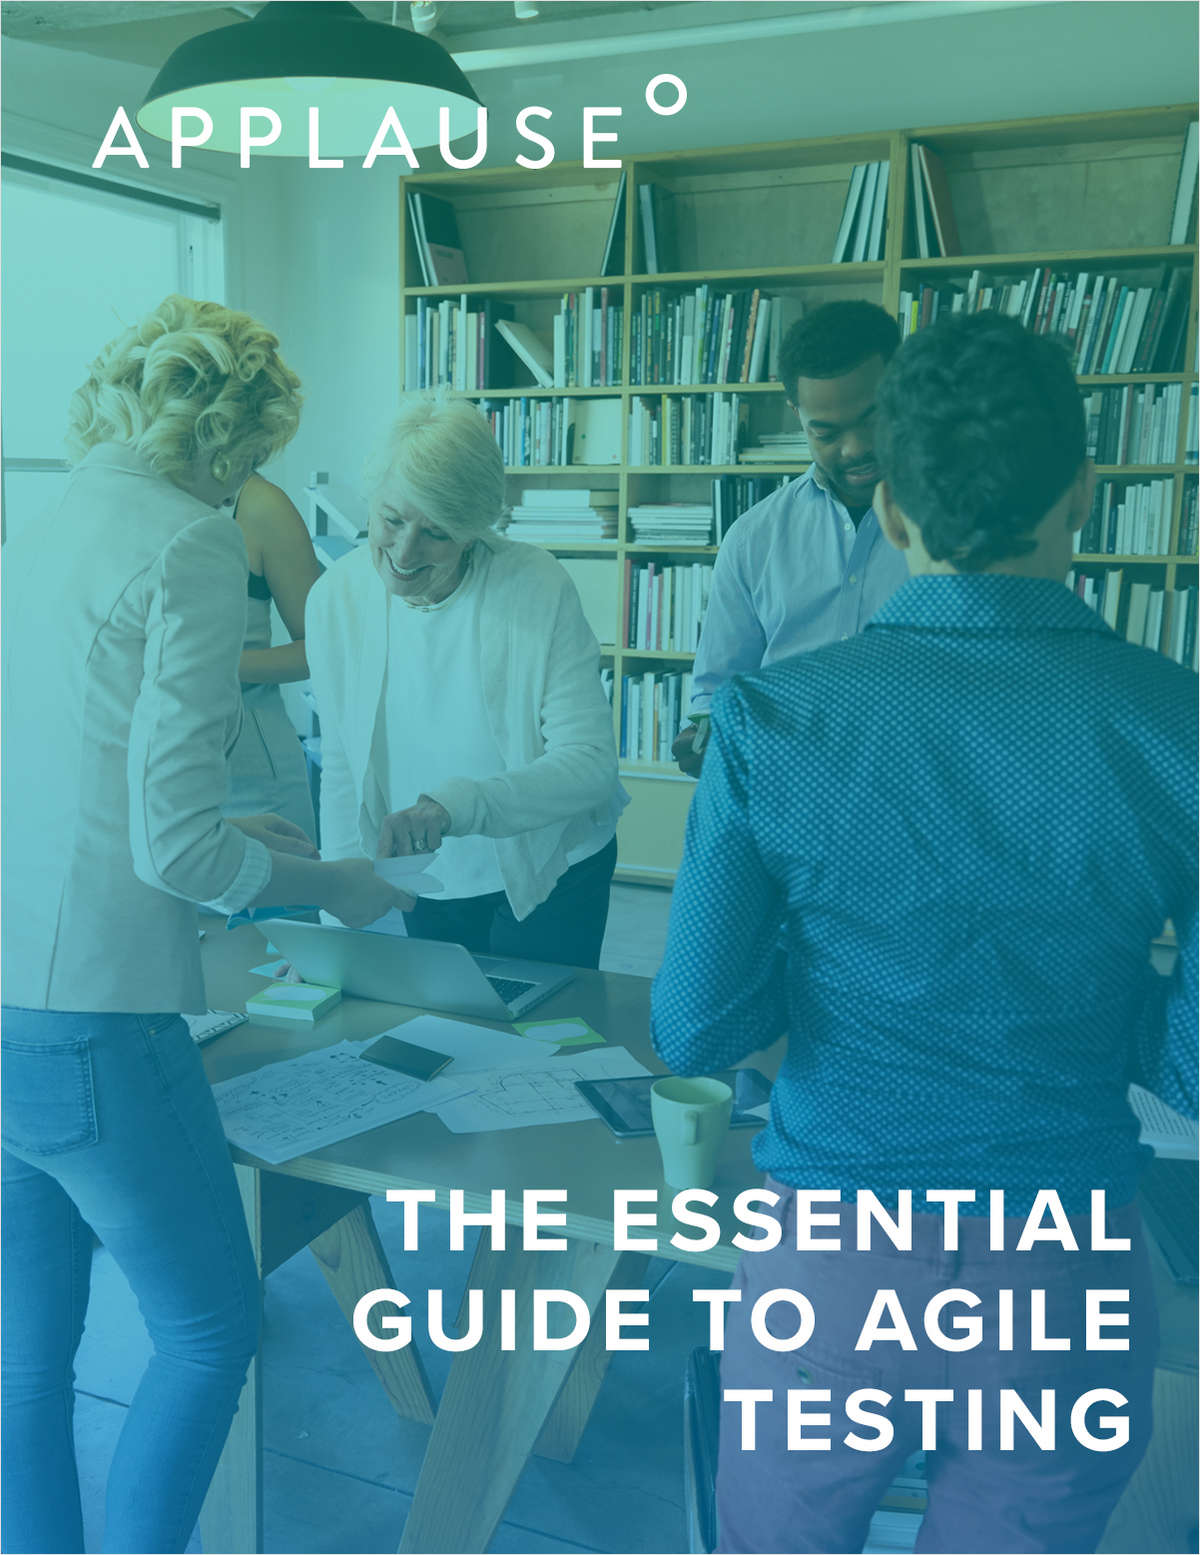 The Essential Guide to Agile Testing